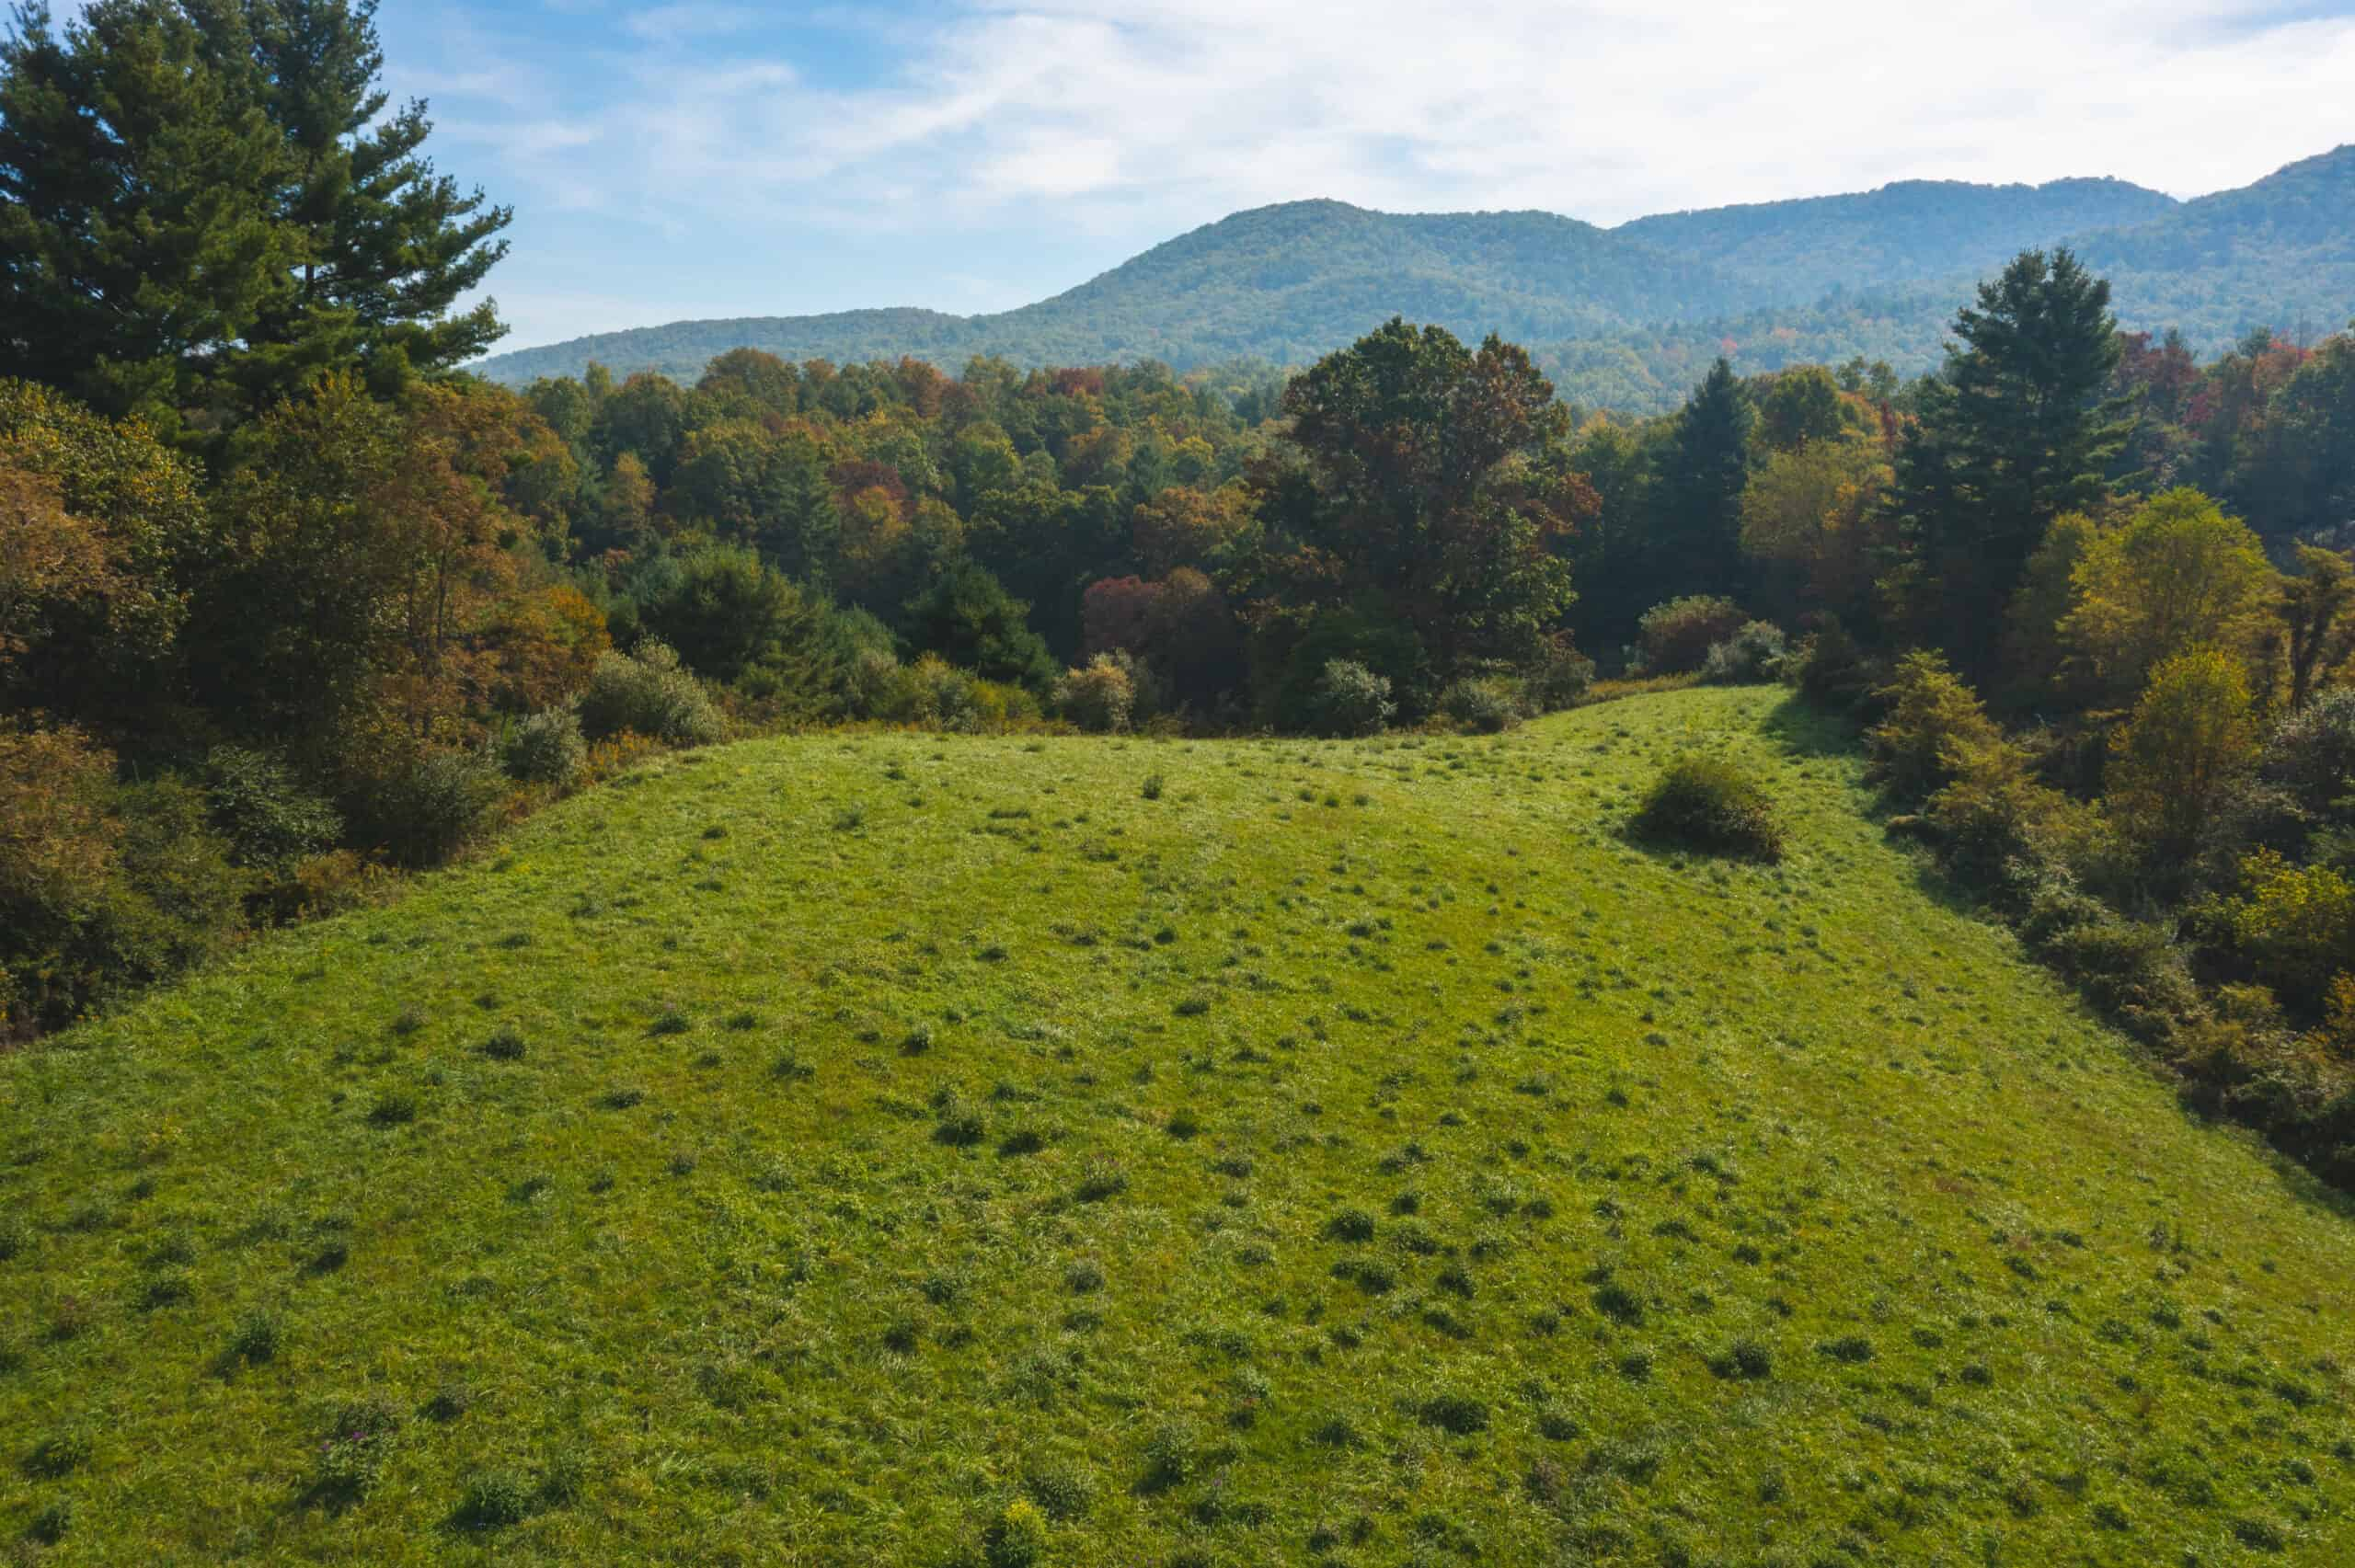 East Tennessee Mountain Farm in Johnson County Tennessee